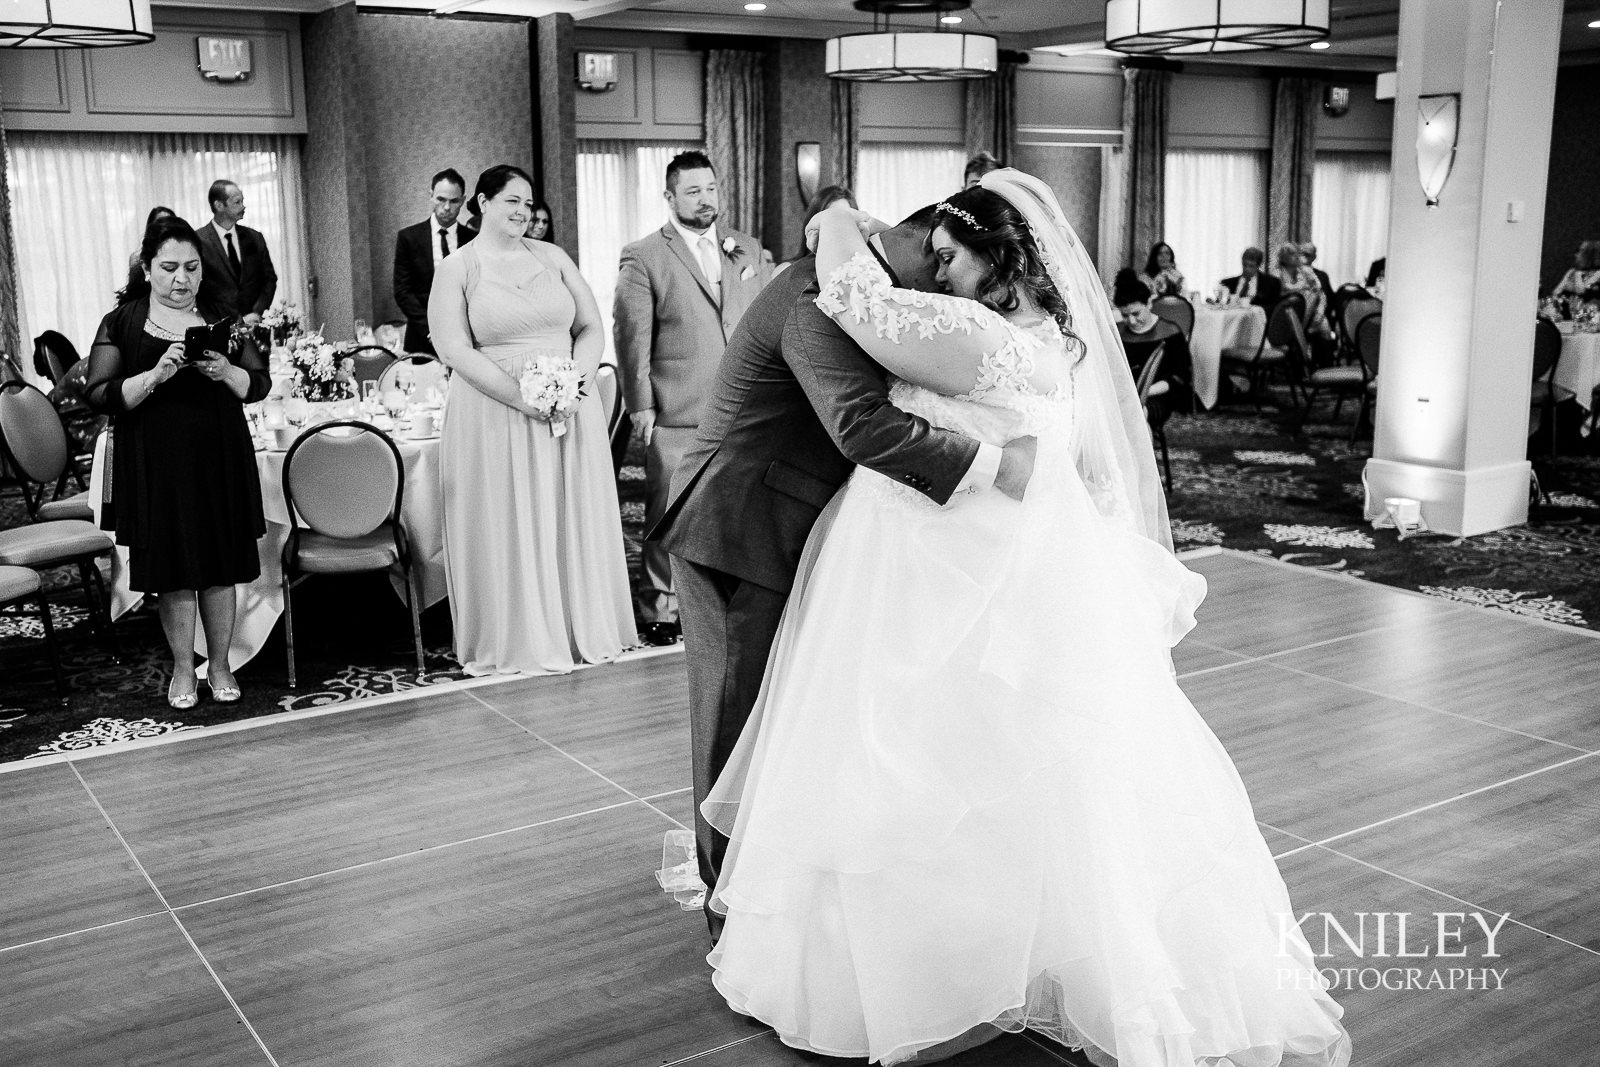 087 - Woodcliff Hotel - Rochester NY wedding photo - Kniley Photography.jpg